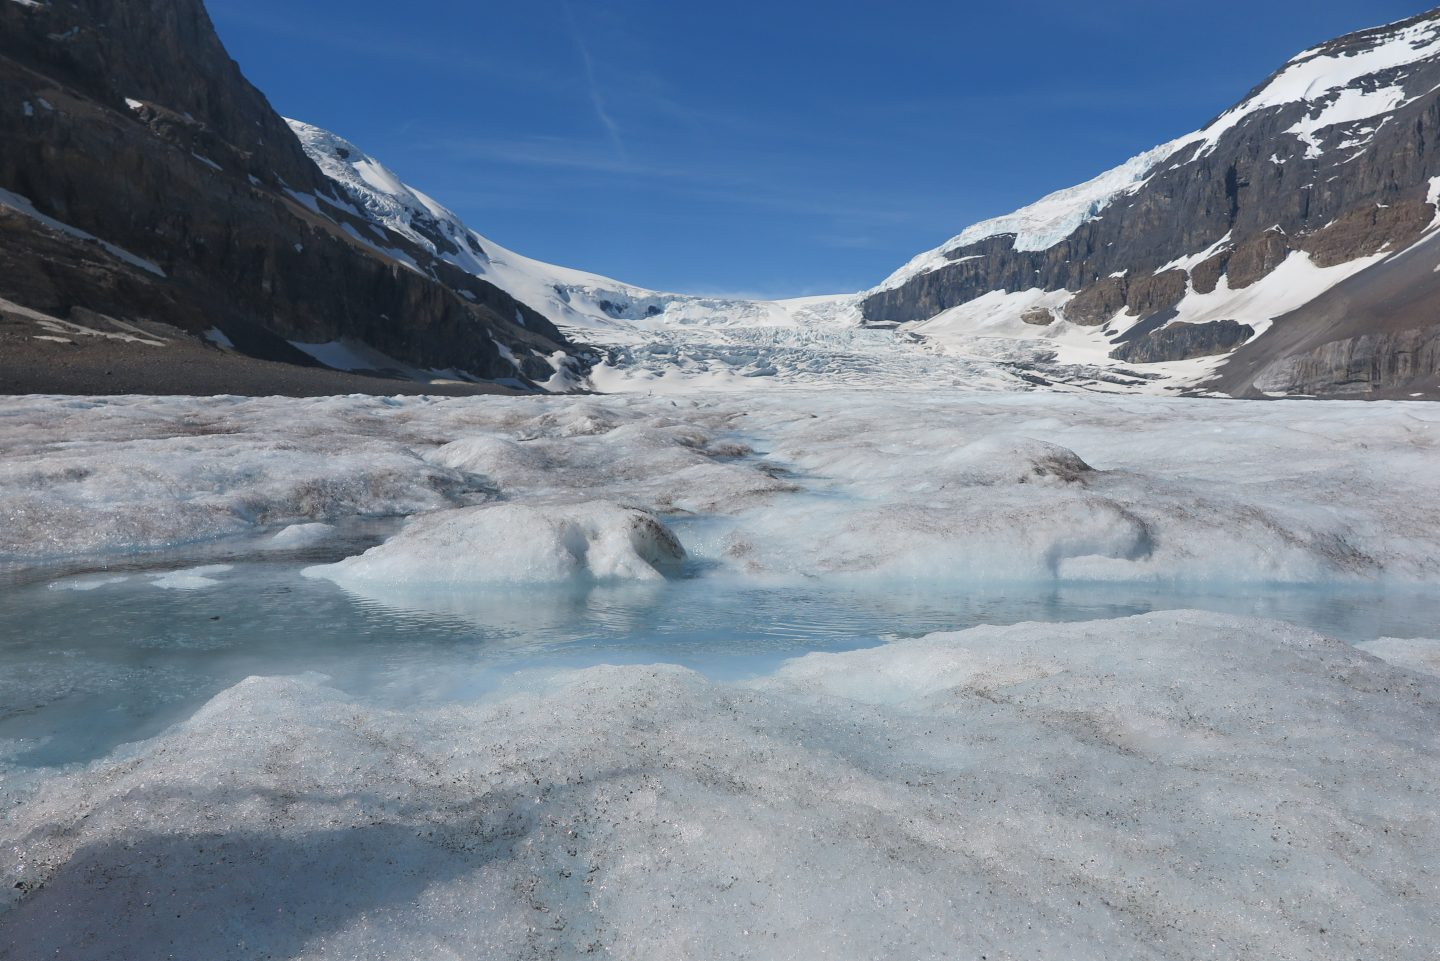 A GLACIER ADVENTURE: THE ICEFIELDS PARKWAY